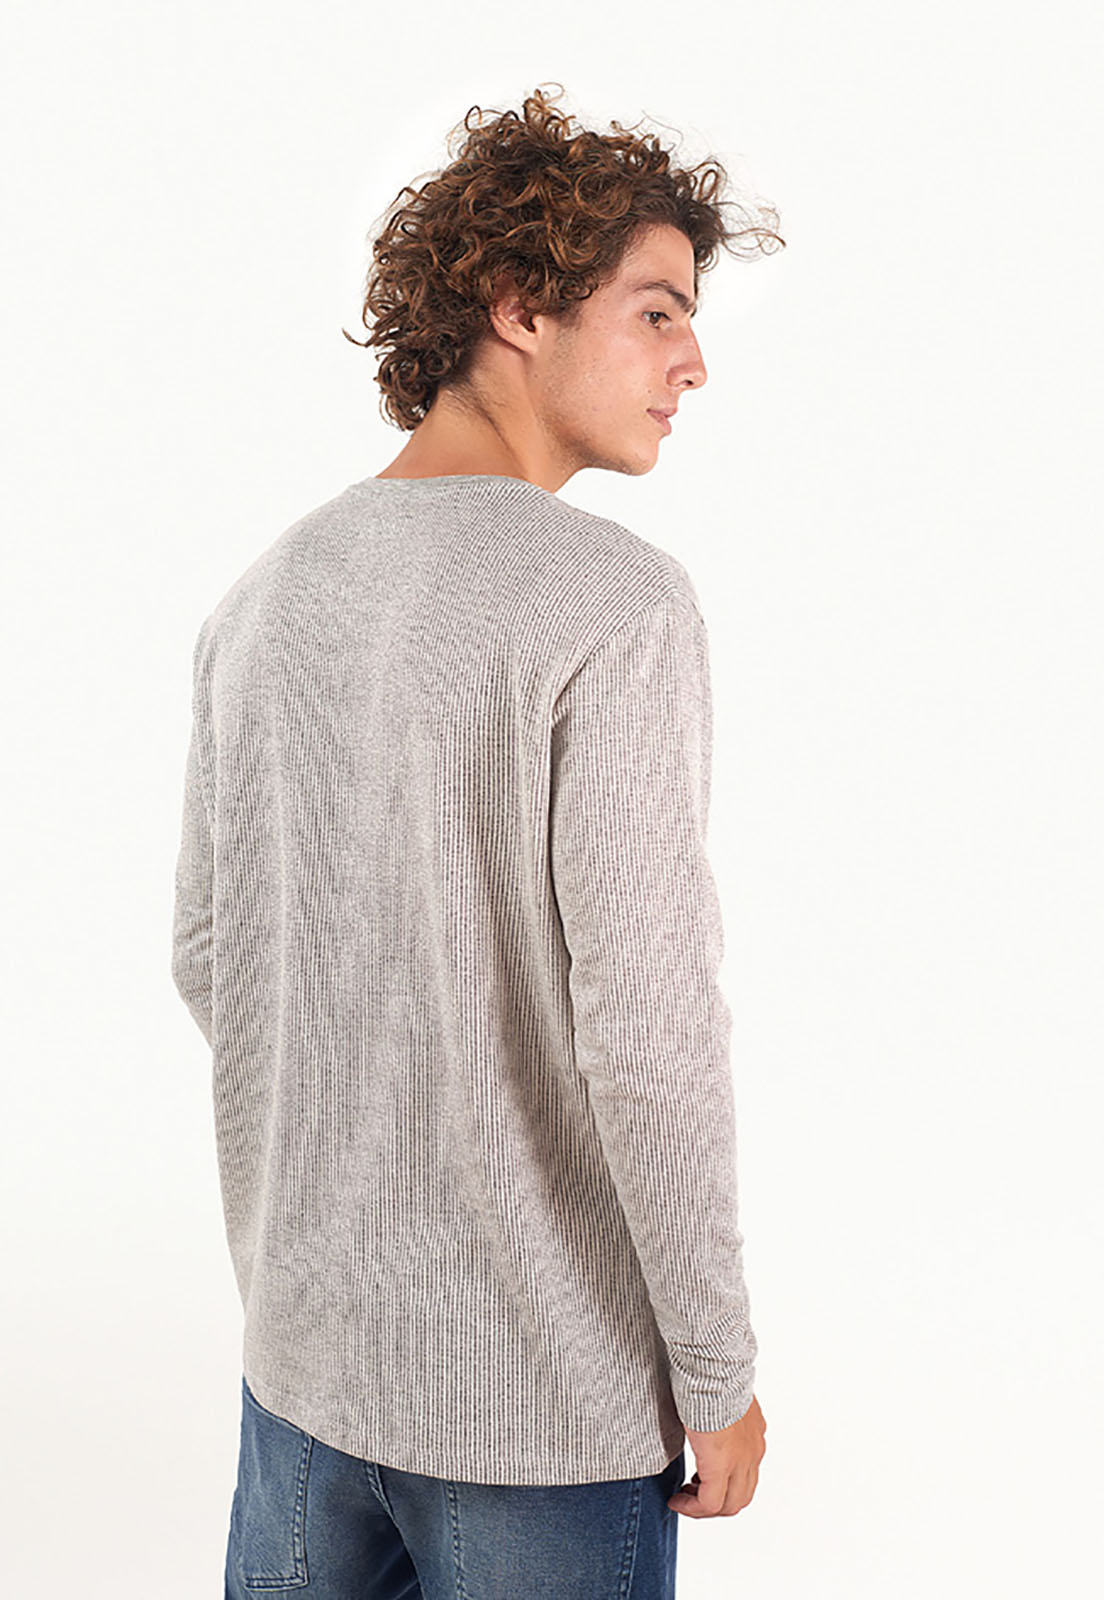 Blusa Tec melty  - melty surf & Co.